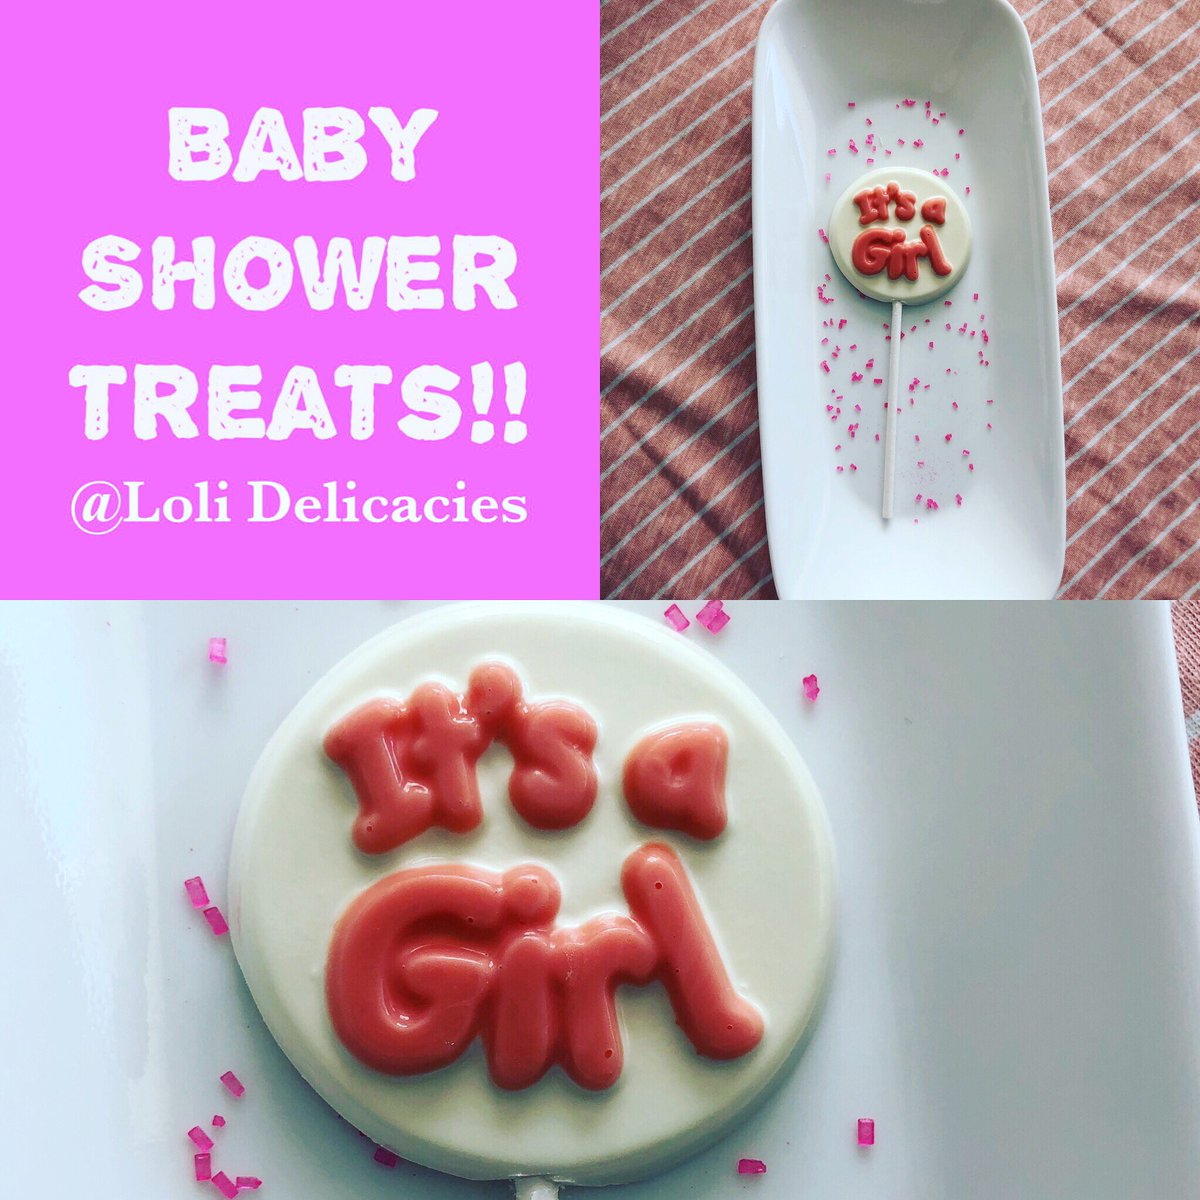 Baby shower treats for girls! Other color combinations available if pink isn't your thing! @lolidelicacies @LDelicacies #itsagirl #itsagirl#babyshower #babyshowerdecorations #babyshowerideas #pink #waxhawncpic.twitter.com/wnsSahstBu